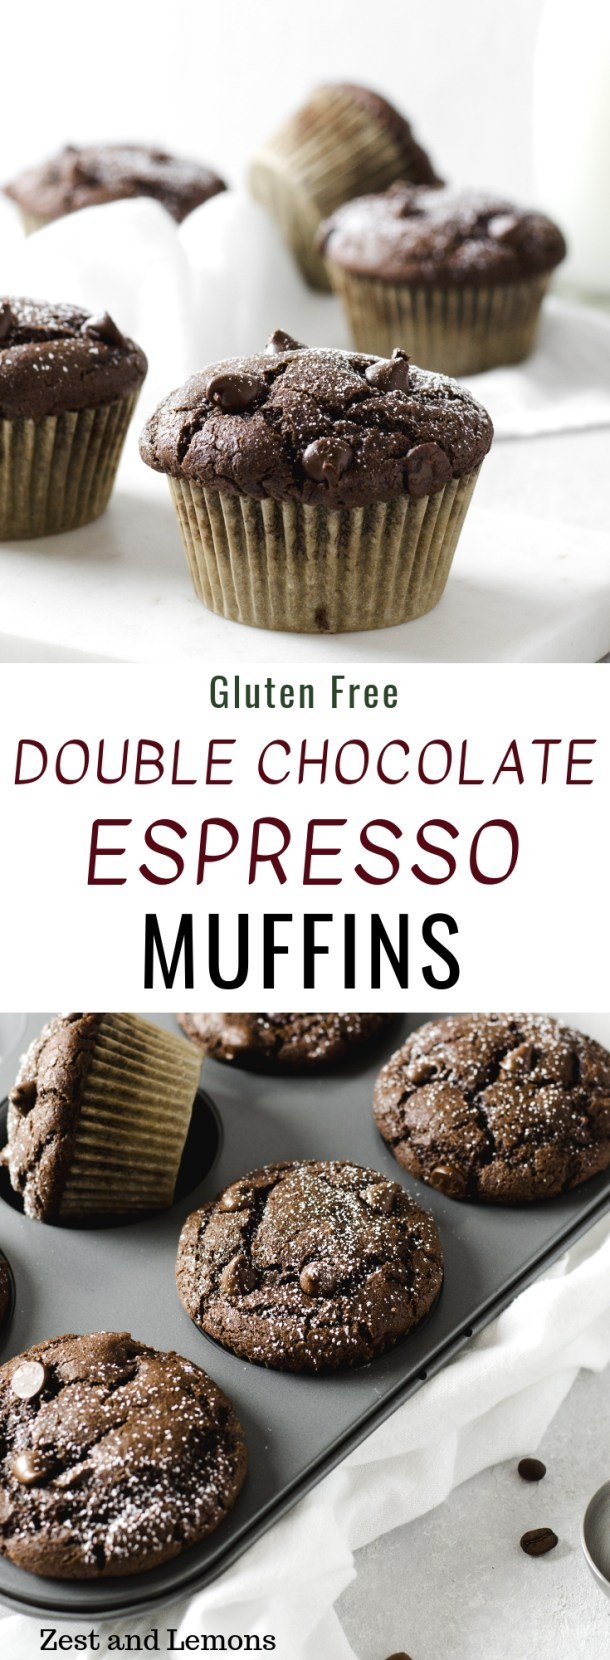 Gluten free double chocolate espresso muffins. Rich and decadent chocolate muffins with a deep chocolate flavor! - Zest and Lemons #glutenfree #glutenfreemuffins #chocolatemuffins #chocolateespresso